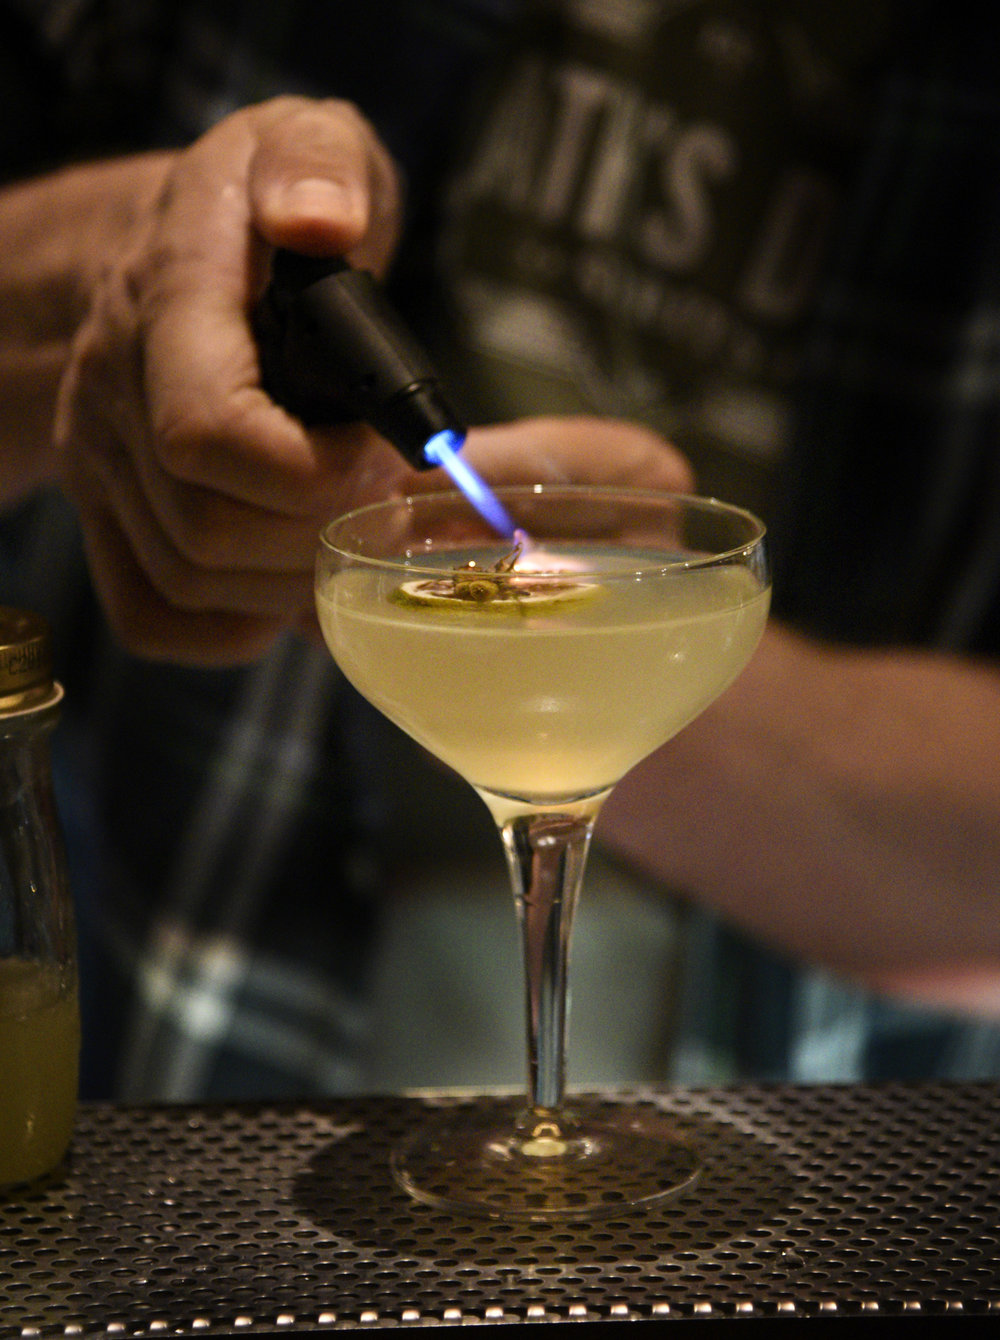 Solo Uno (Pier): 40 mL Hayman's Old Tom, 25 mL liquore Camomilla, 20 mL honey syrup, 20 mL lemon juice, spoon Pimiento Dram --- shake and double strain